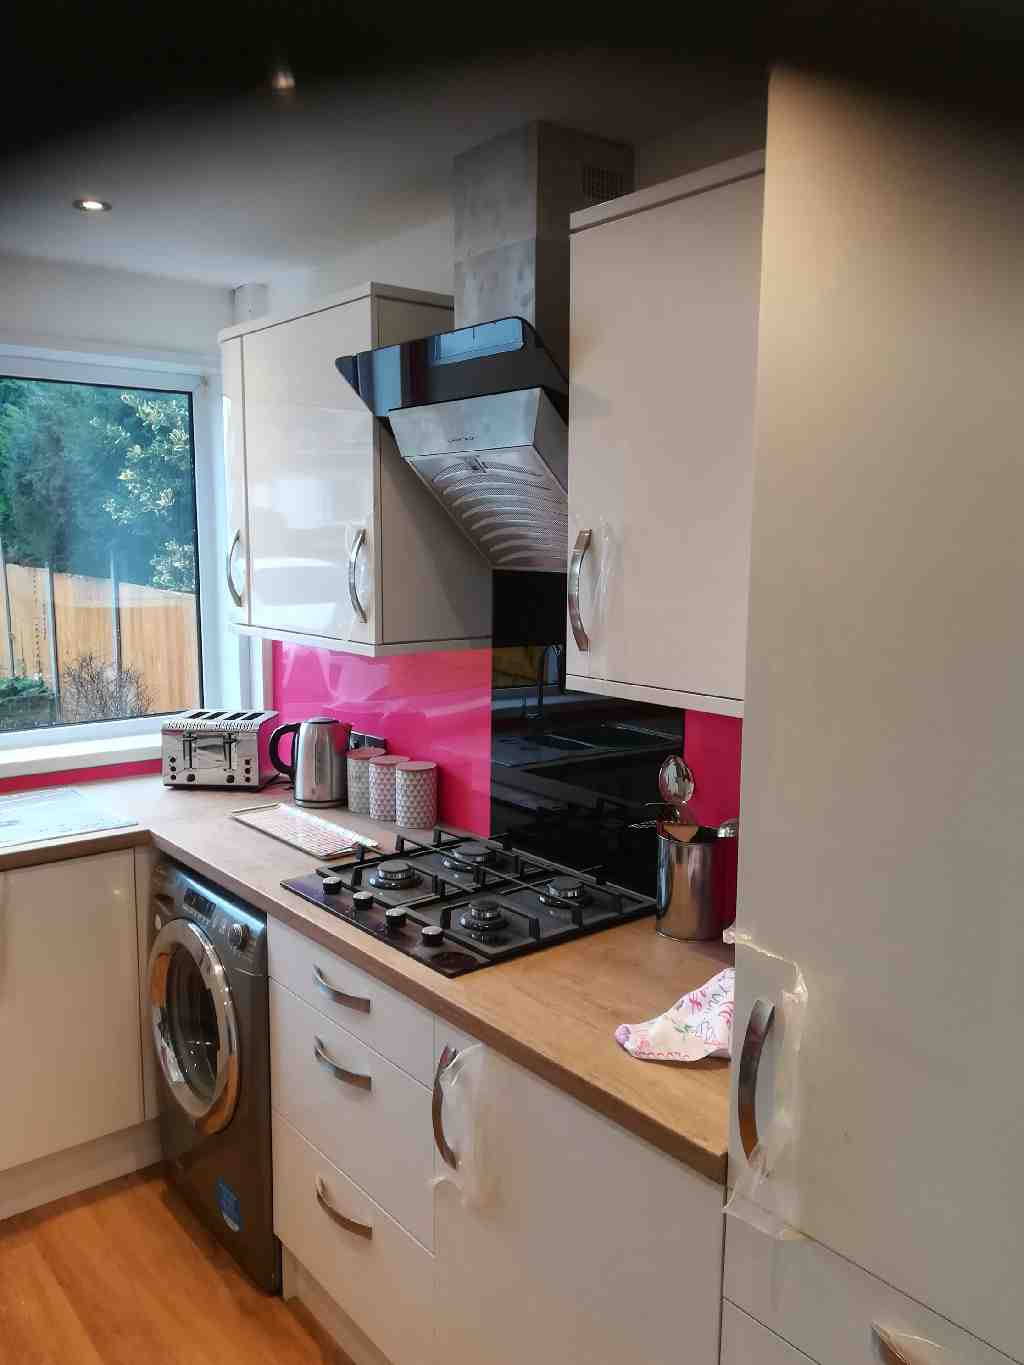 Gallery Kitchens for Visually Impaired Great Barr Birmingham 05